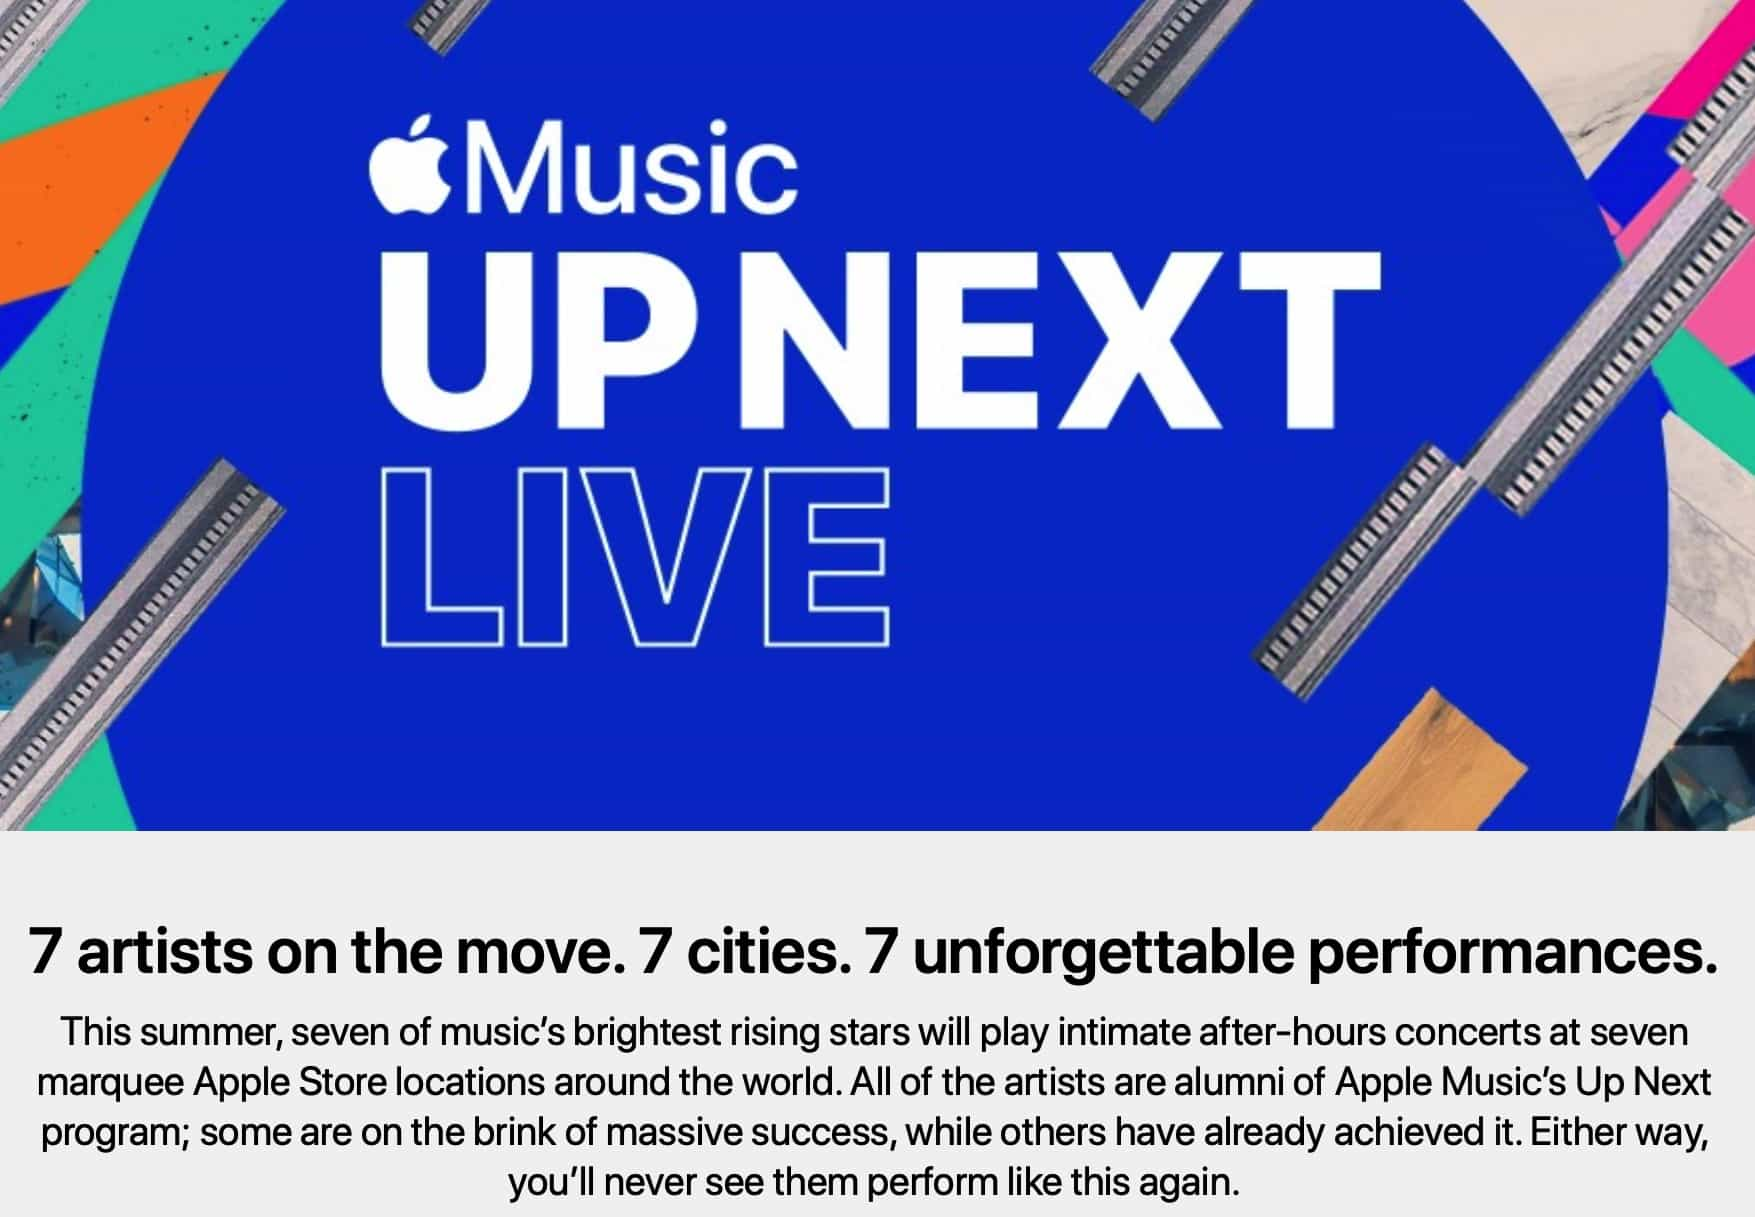 Apple's free Up Next concerts feature some pretty big names.